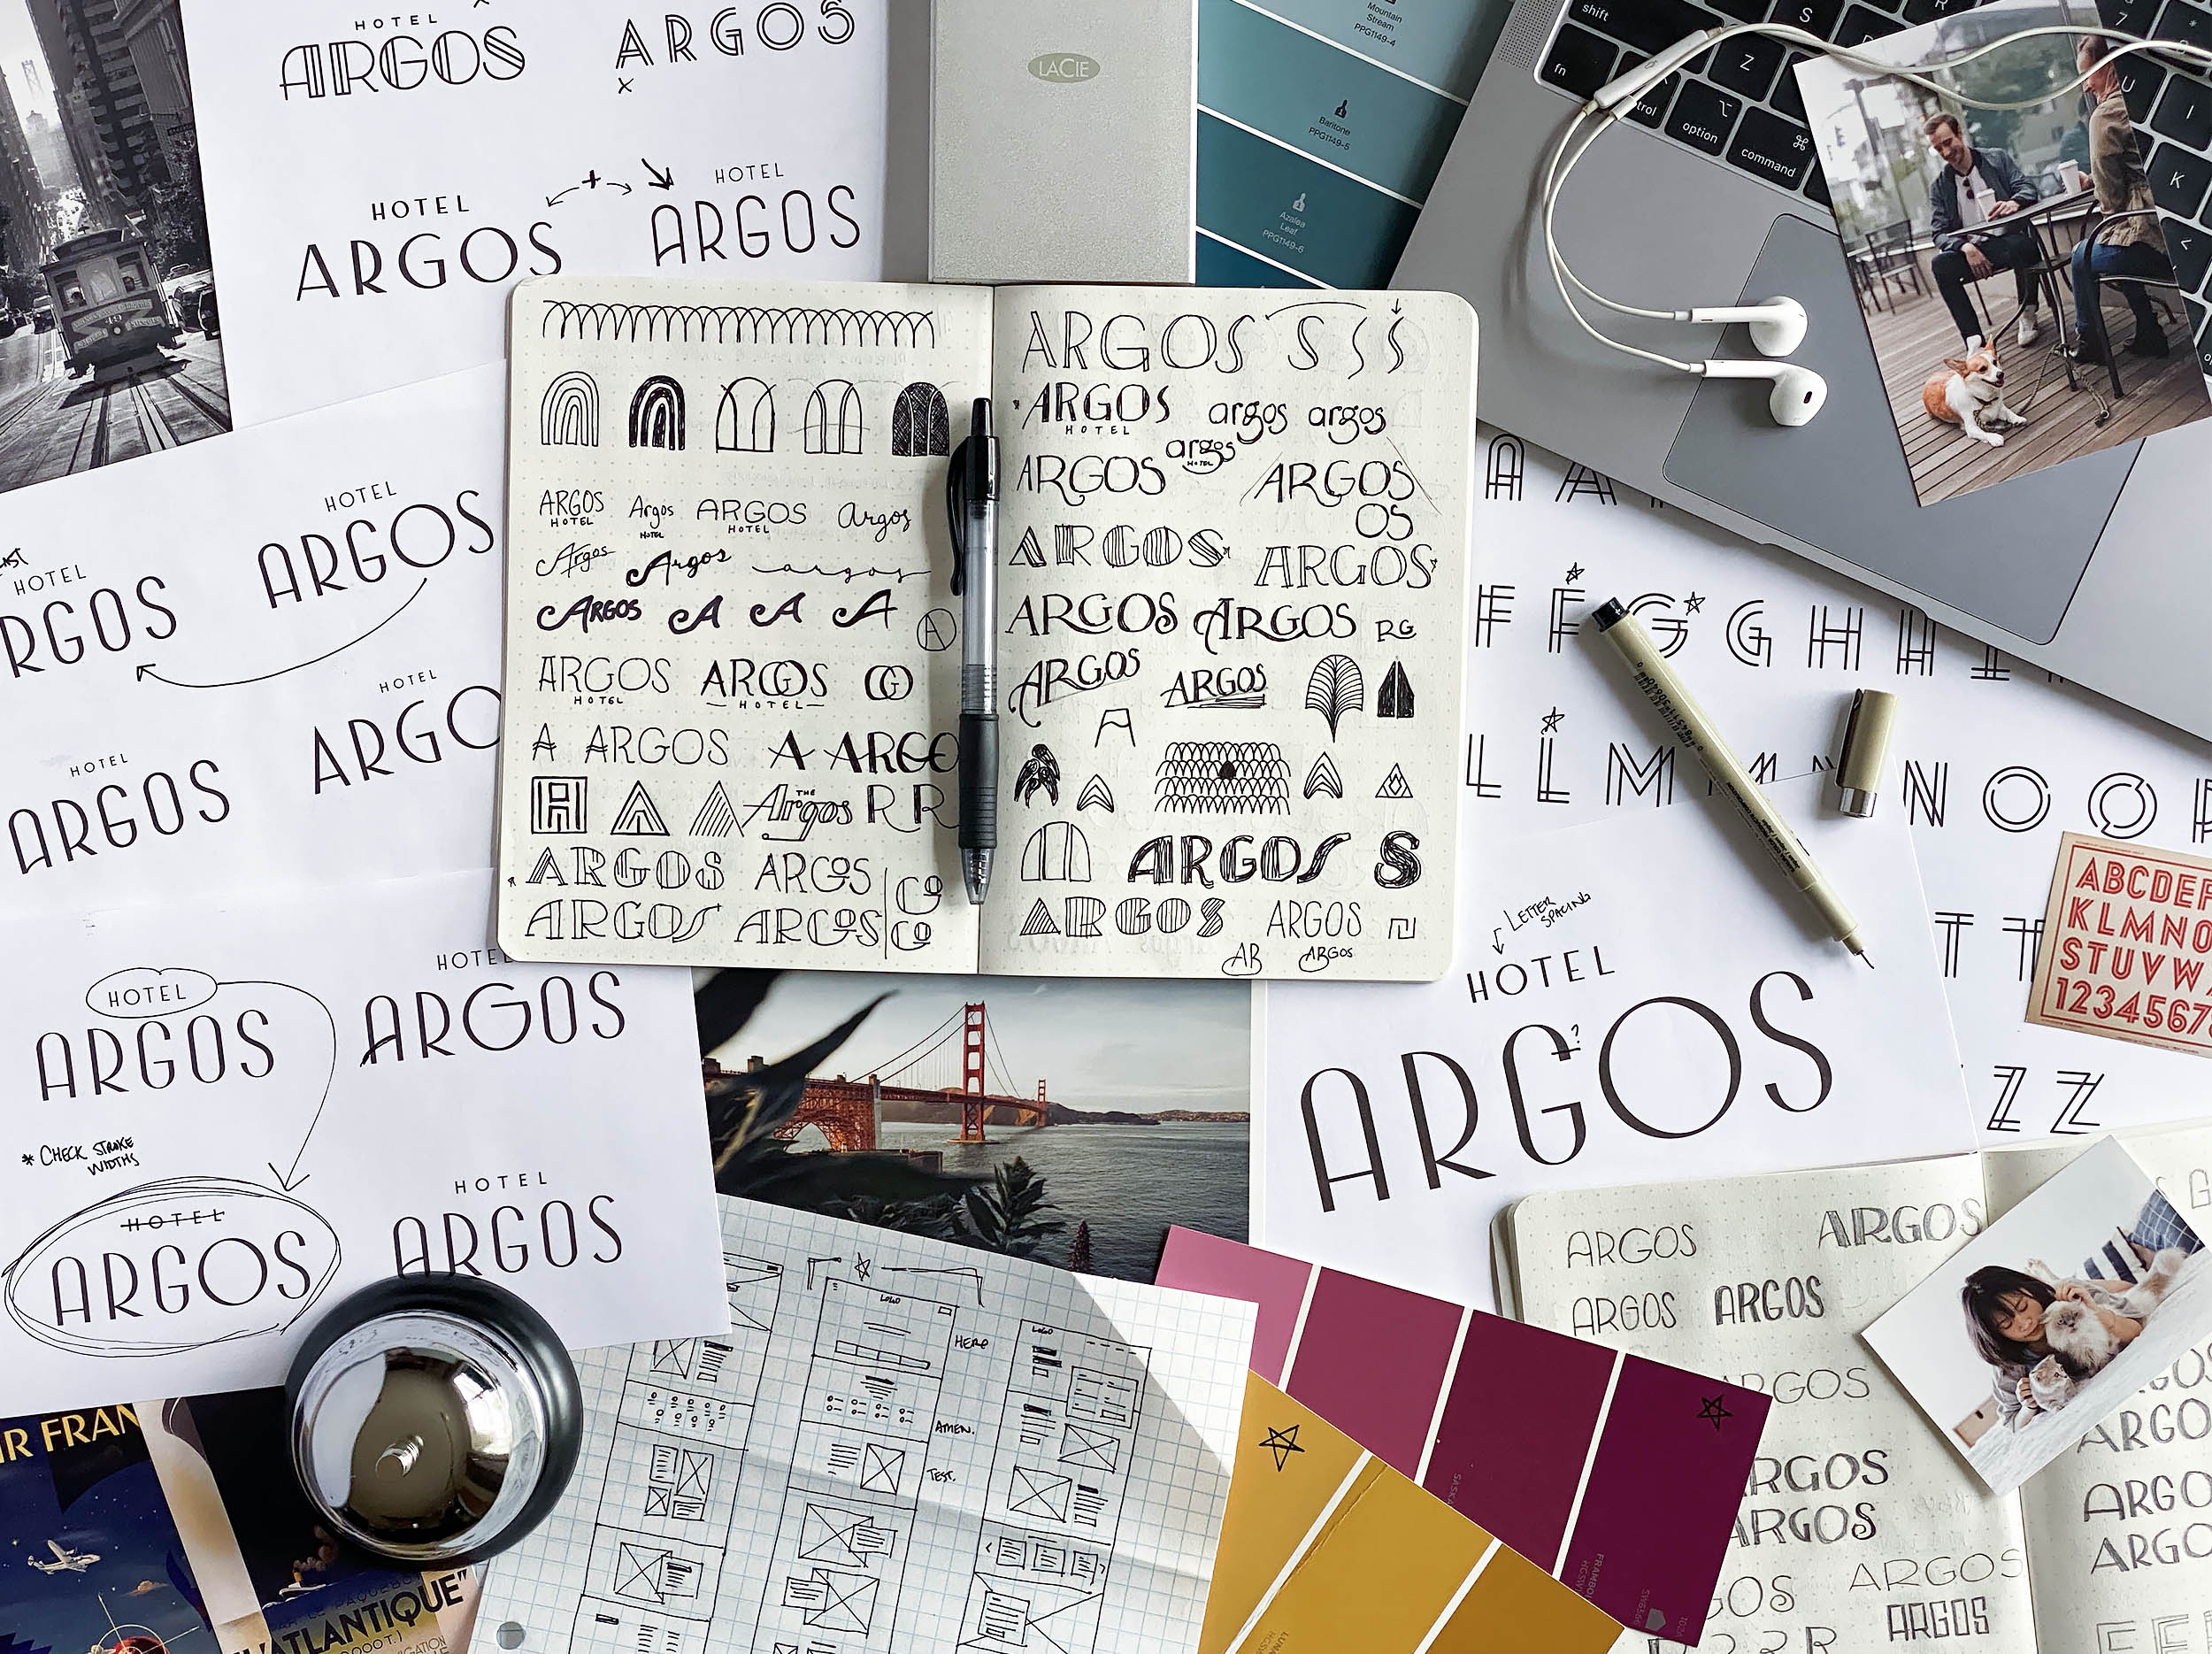 A desk covered in sketchbooks and inspiration photos, showing the design process for Hotel Argos.